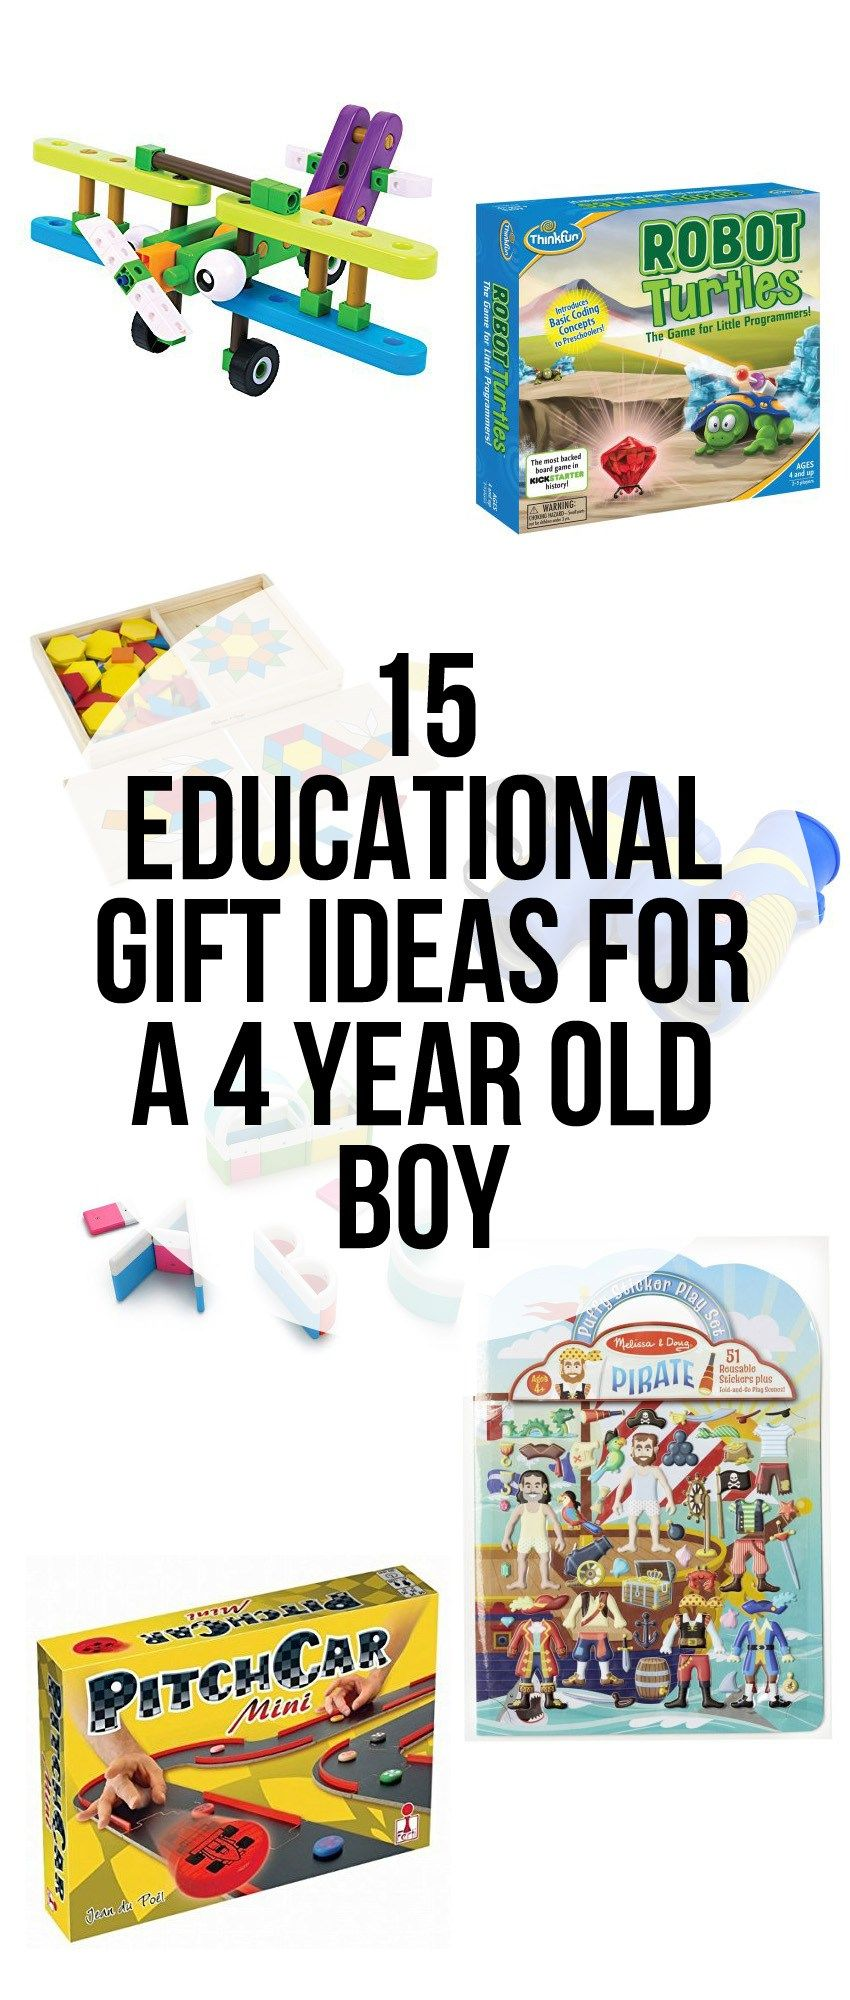 15 Educational Gift Ideas for a 4 Year Old Boy | 4 year ...